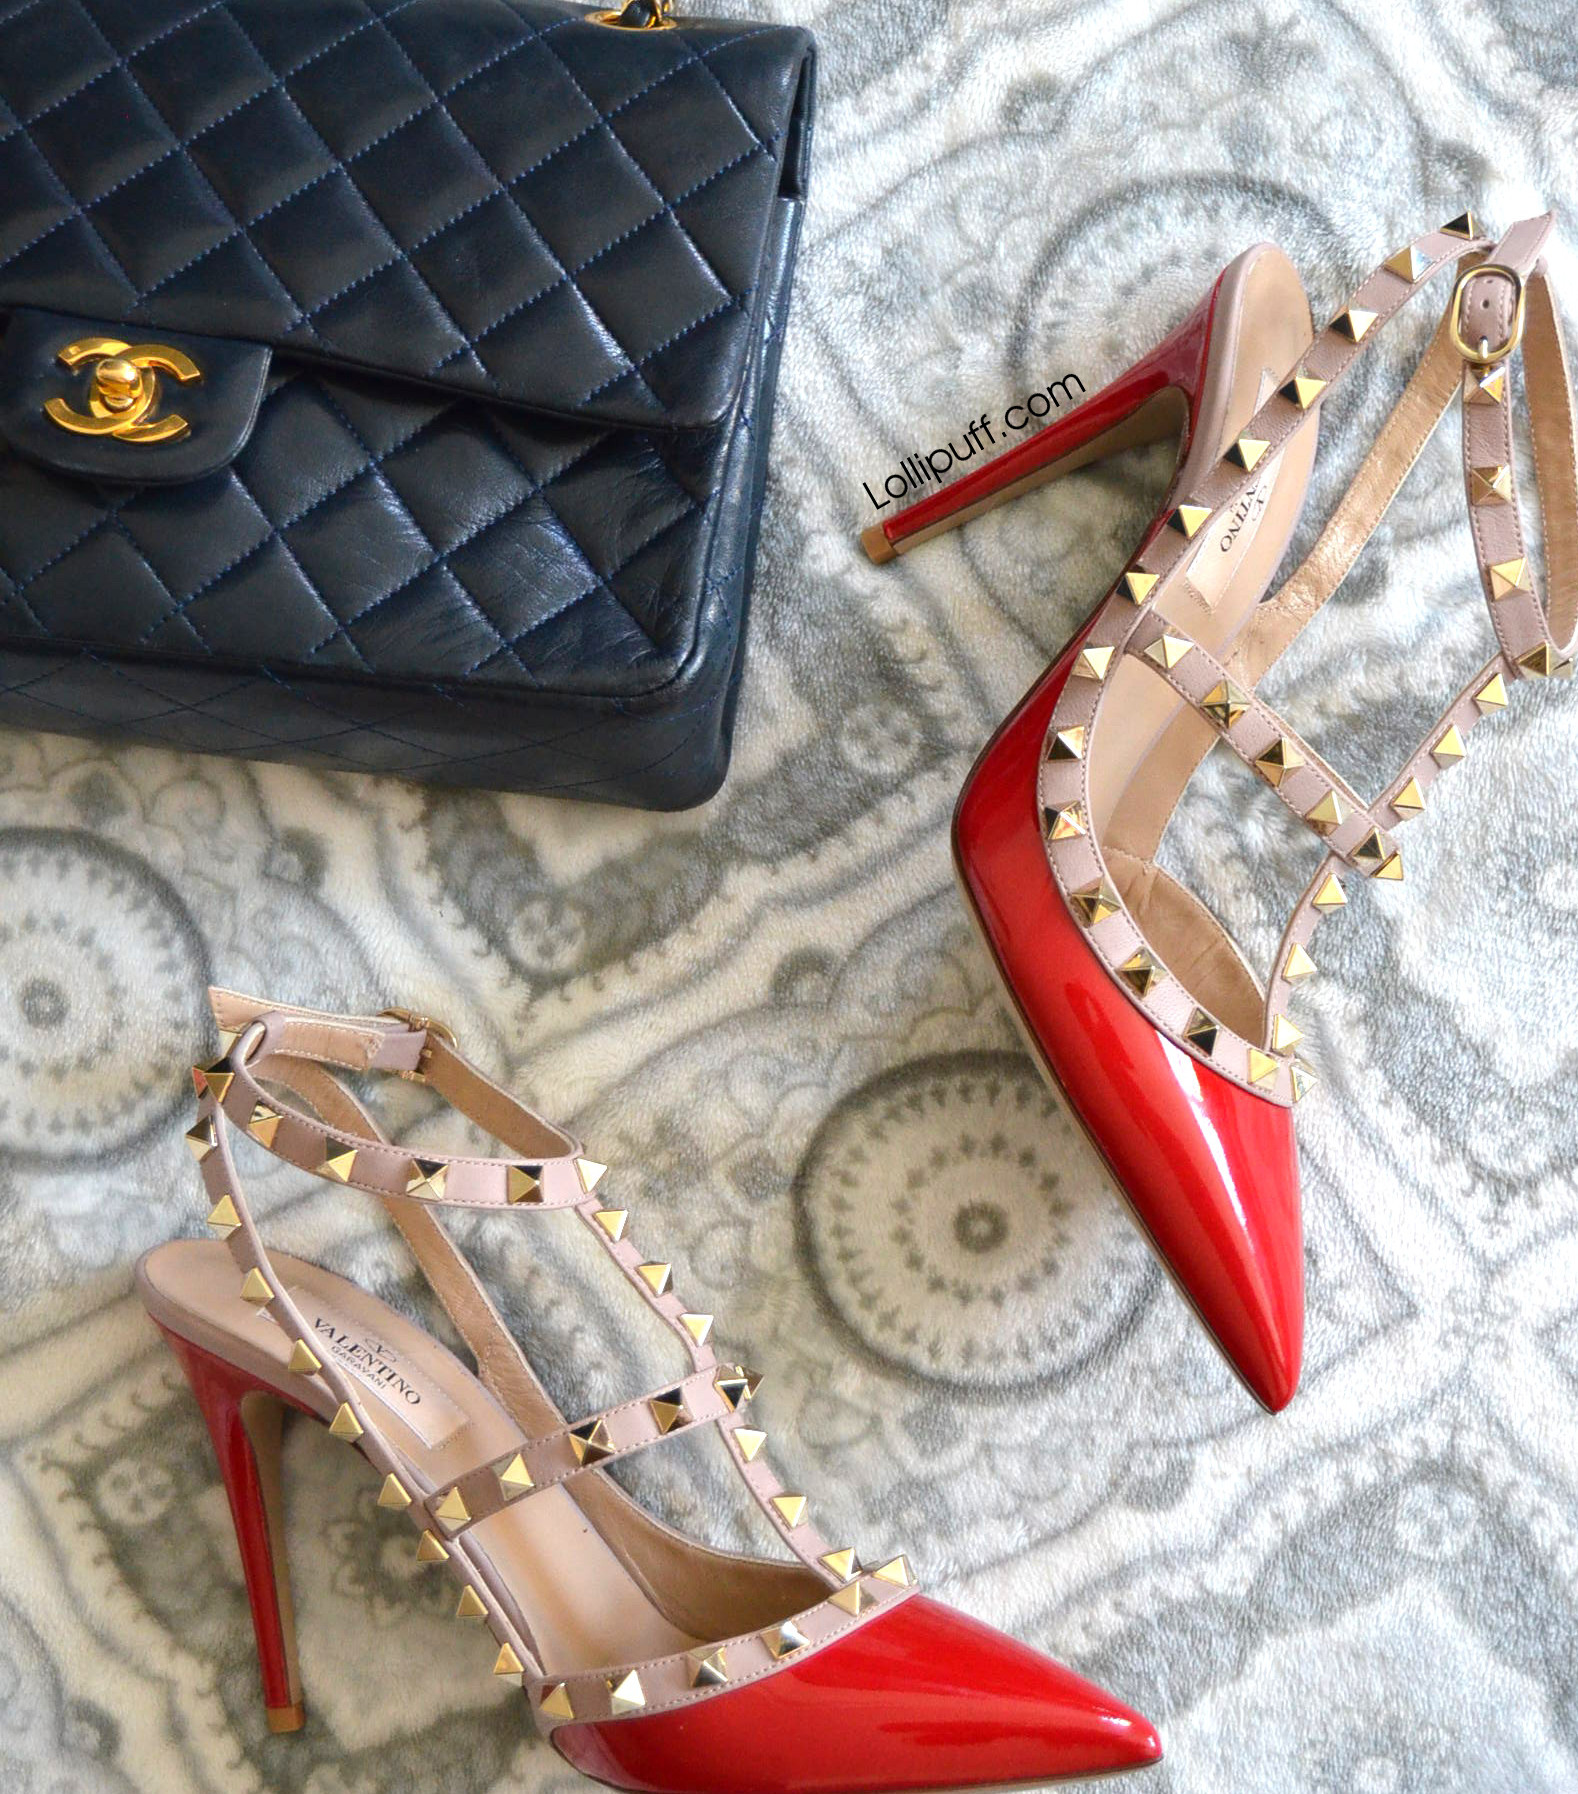 789774c84 A Review of My Favorite Shoes: Valentino Rockstud Sandals | Lollipuff